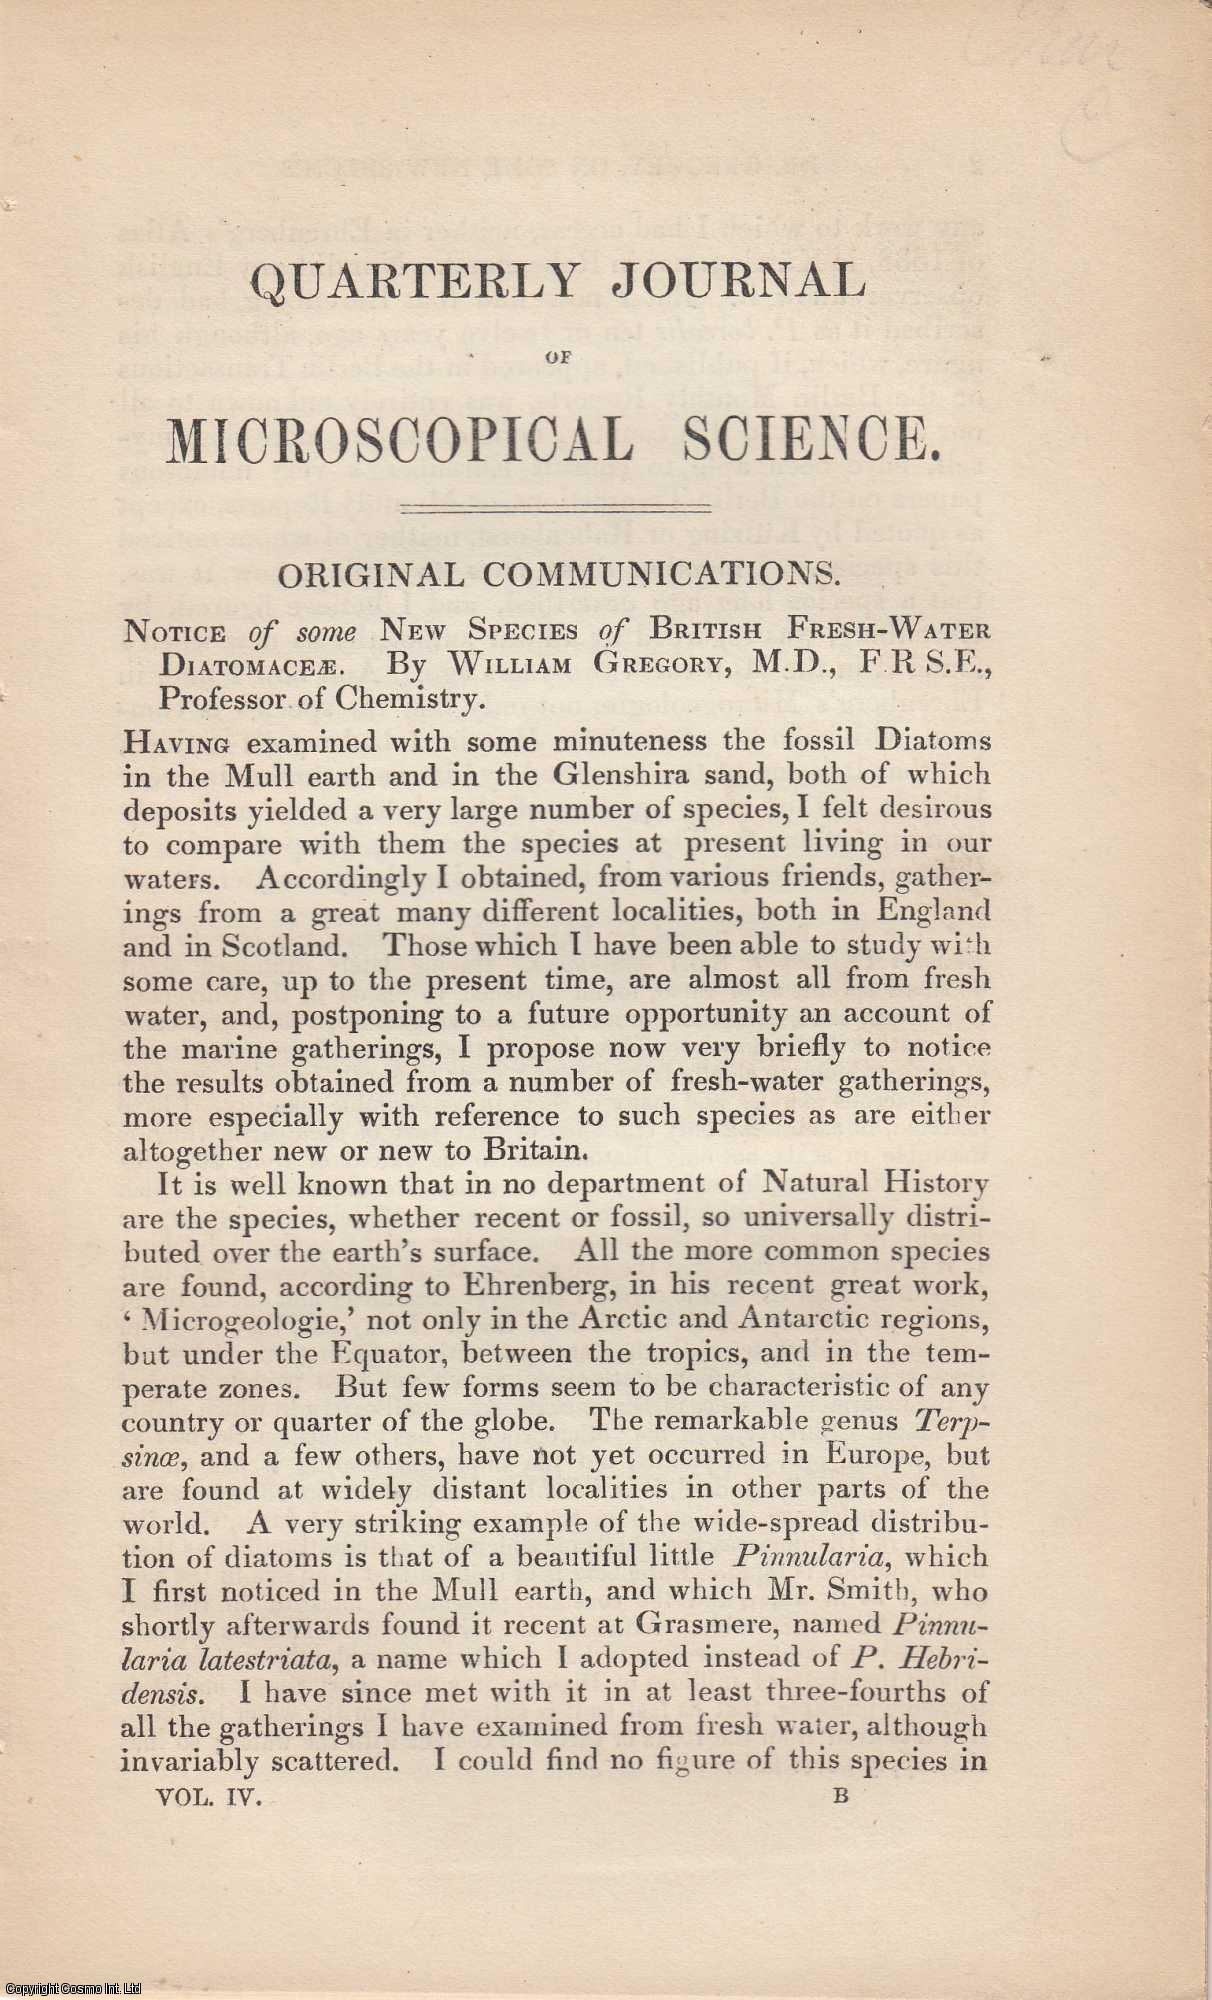 GREGORY, WILLIAM - Notice of some New Species of British Fresh Water Diatomaceae. An original article from the Quarterly Journal of Microscopical Science 1856.